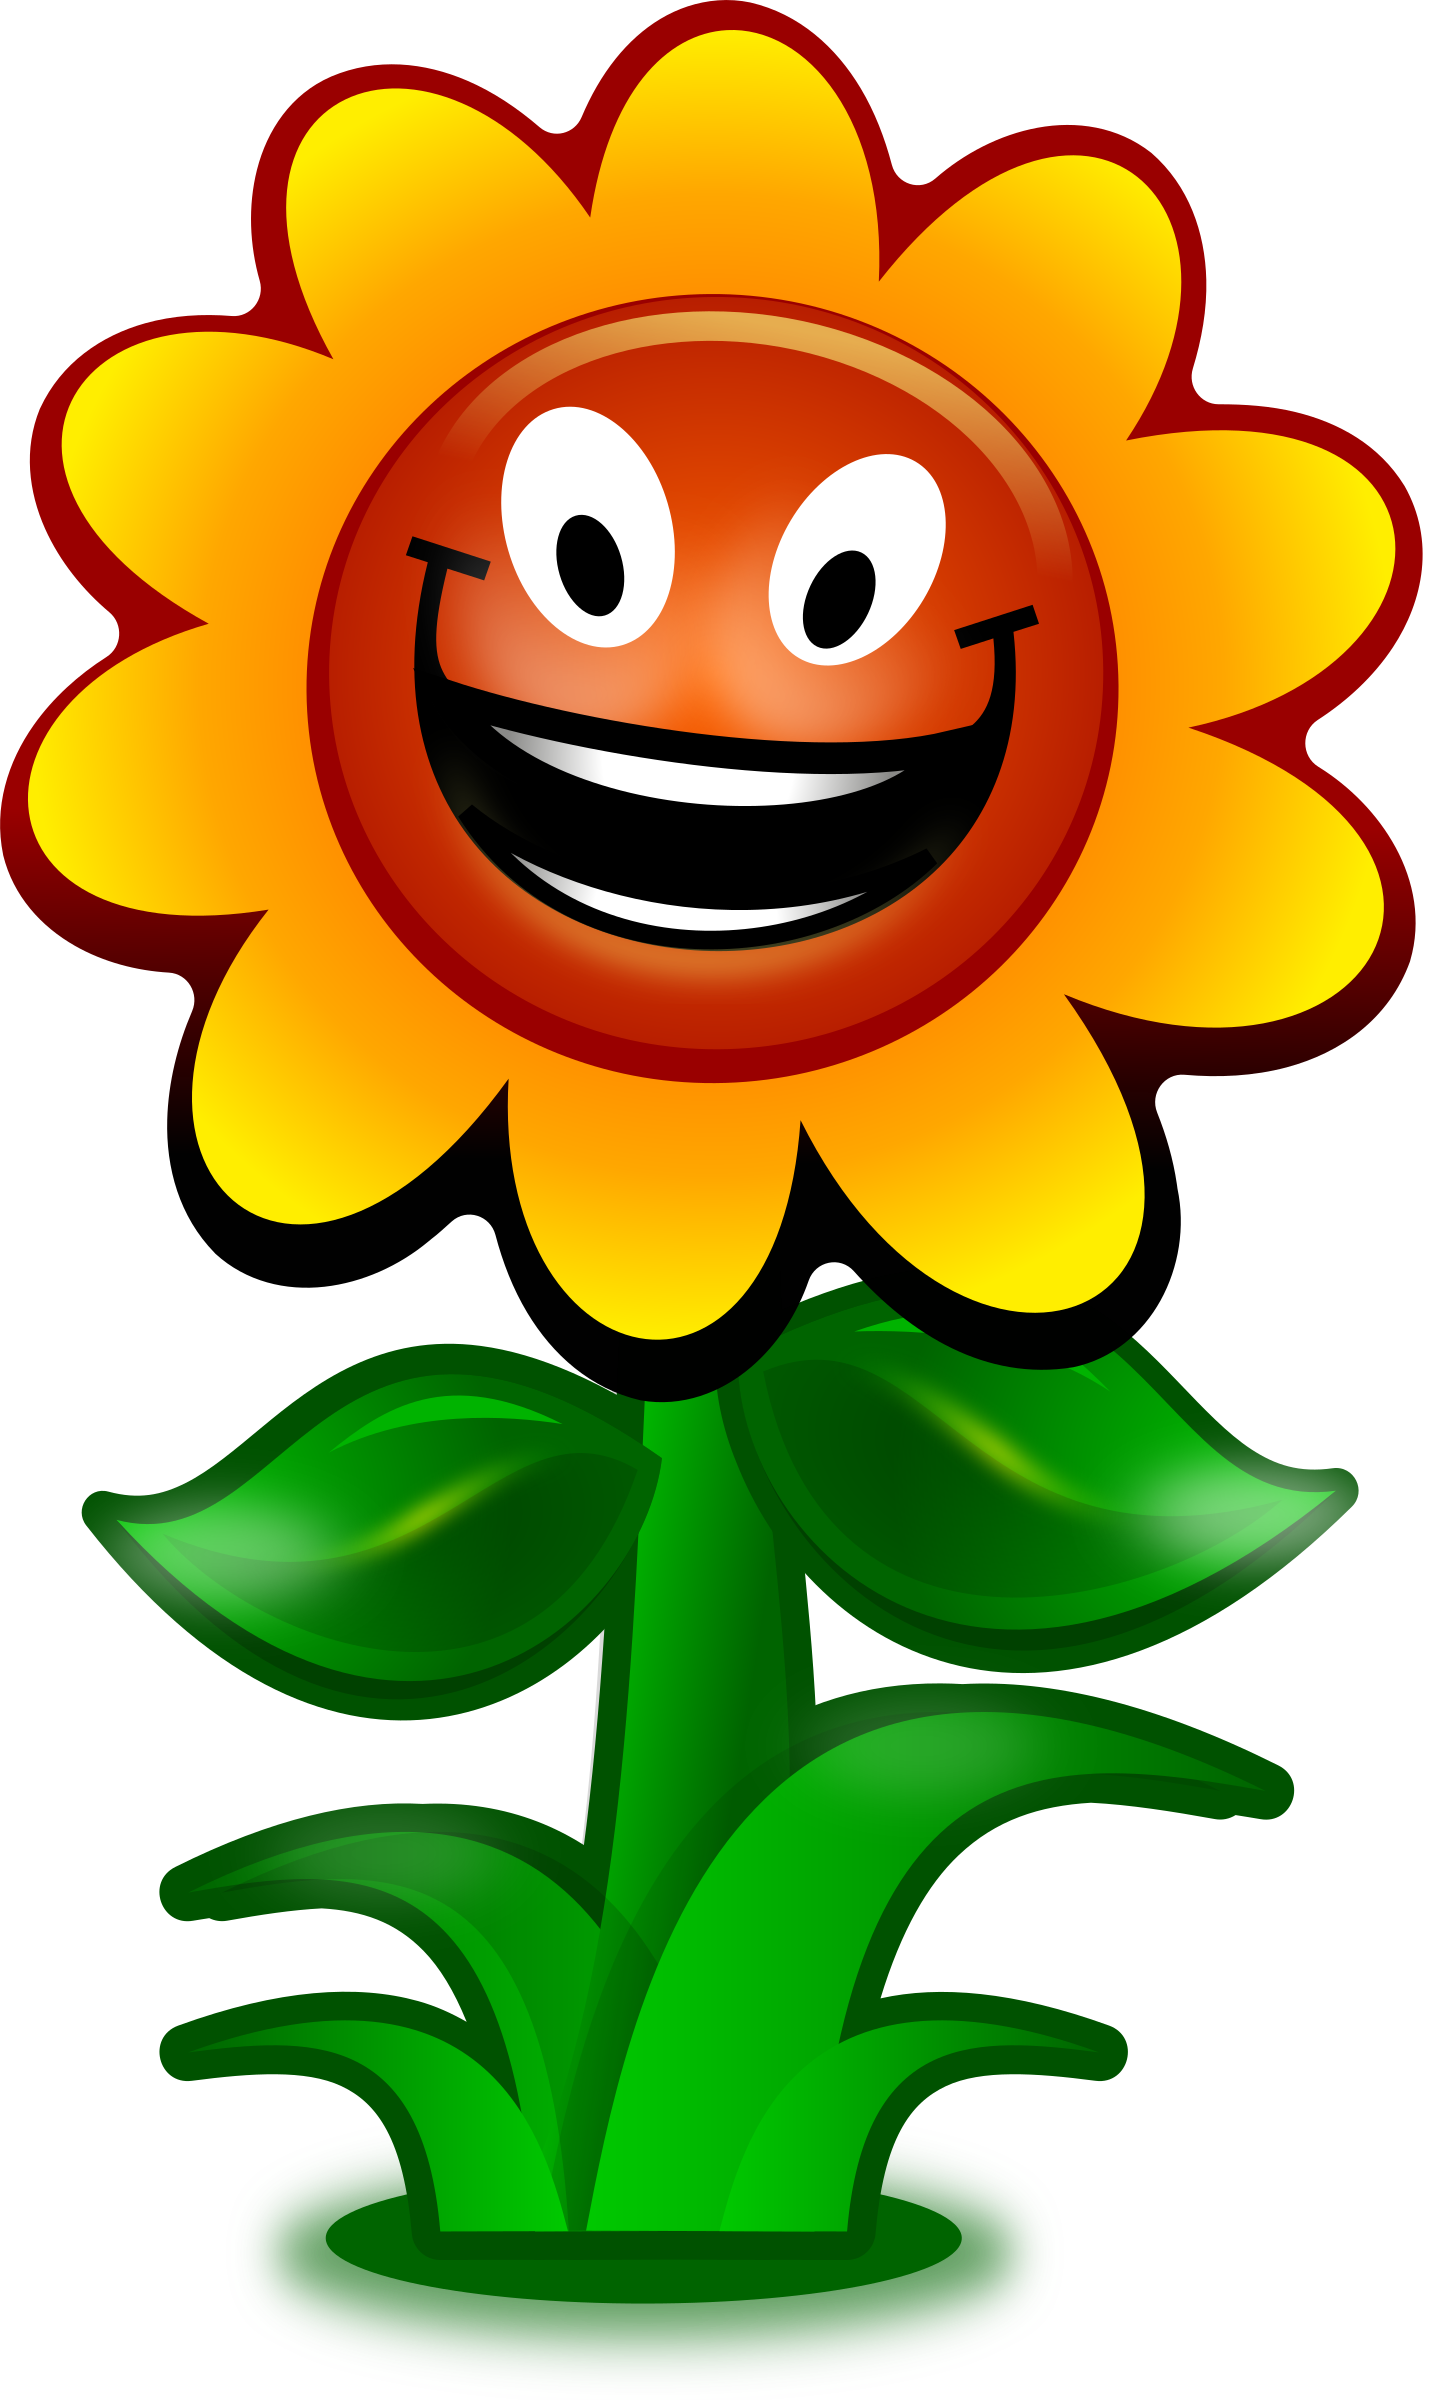 Game character big image. Flower cartoon clipart